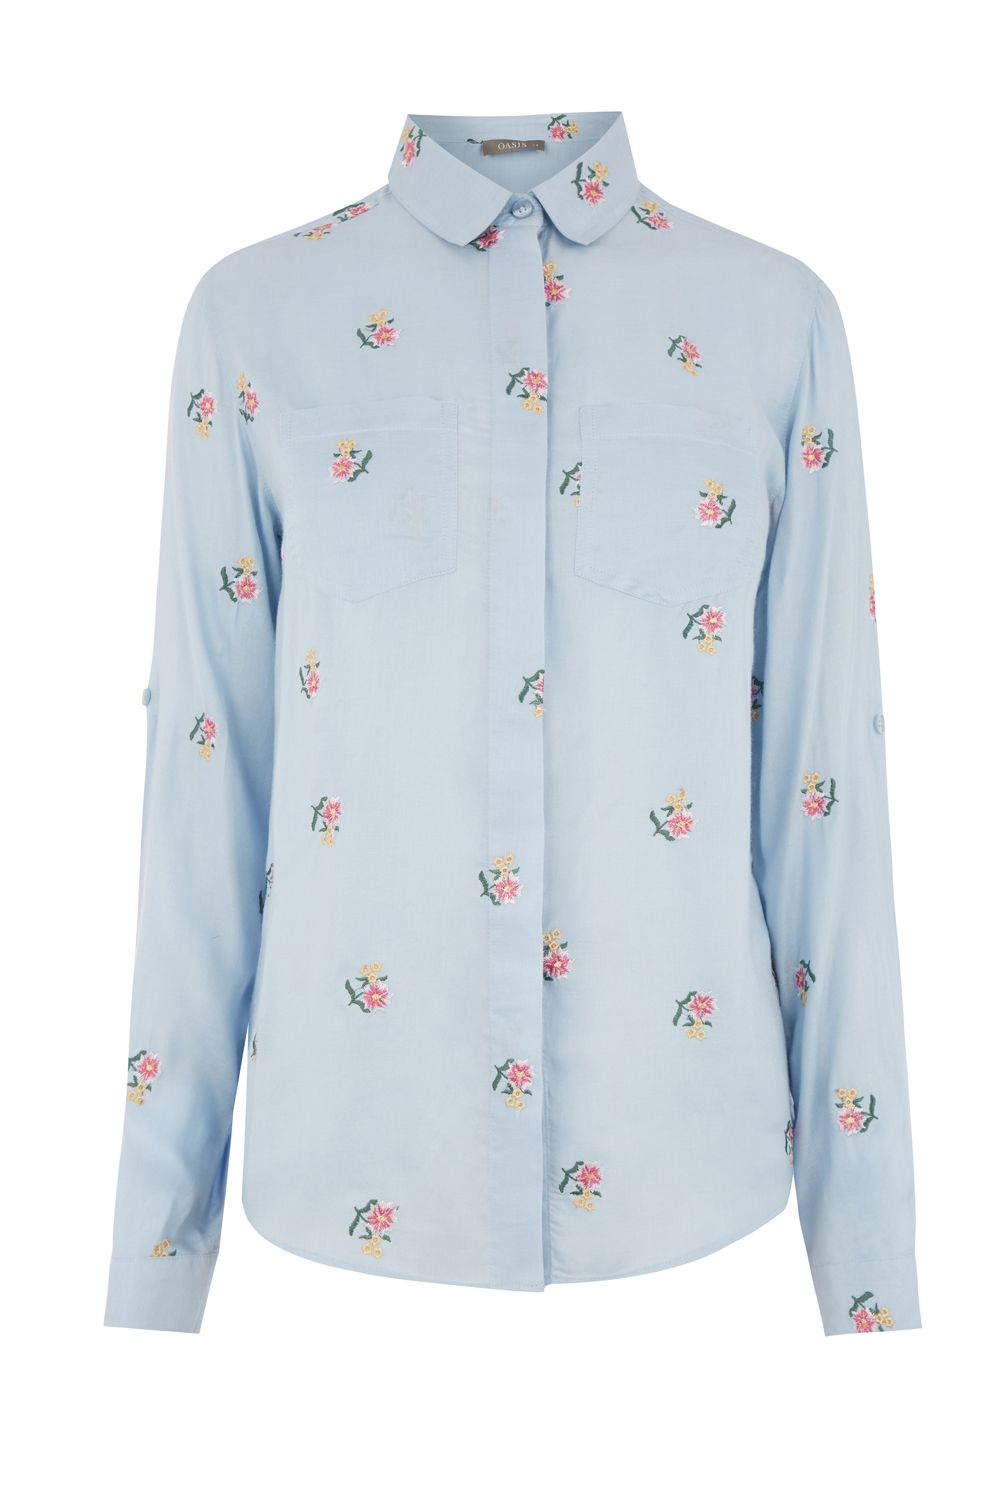 Oasis DITSY EMBROIDERED SHIRT, Multi-Coloured